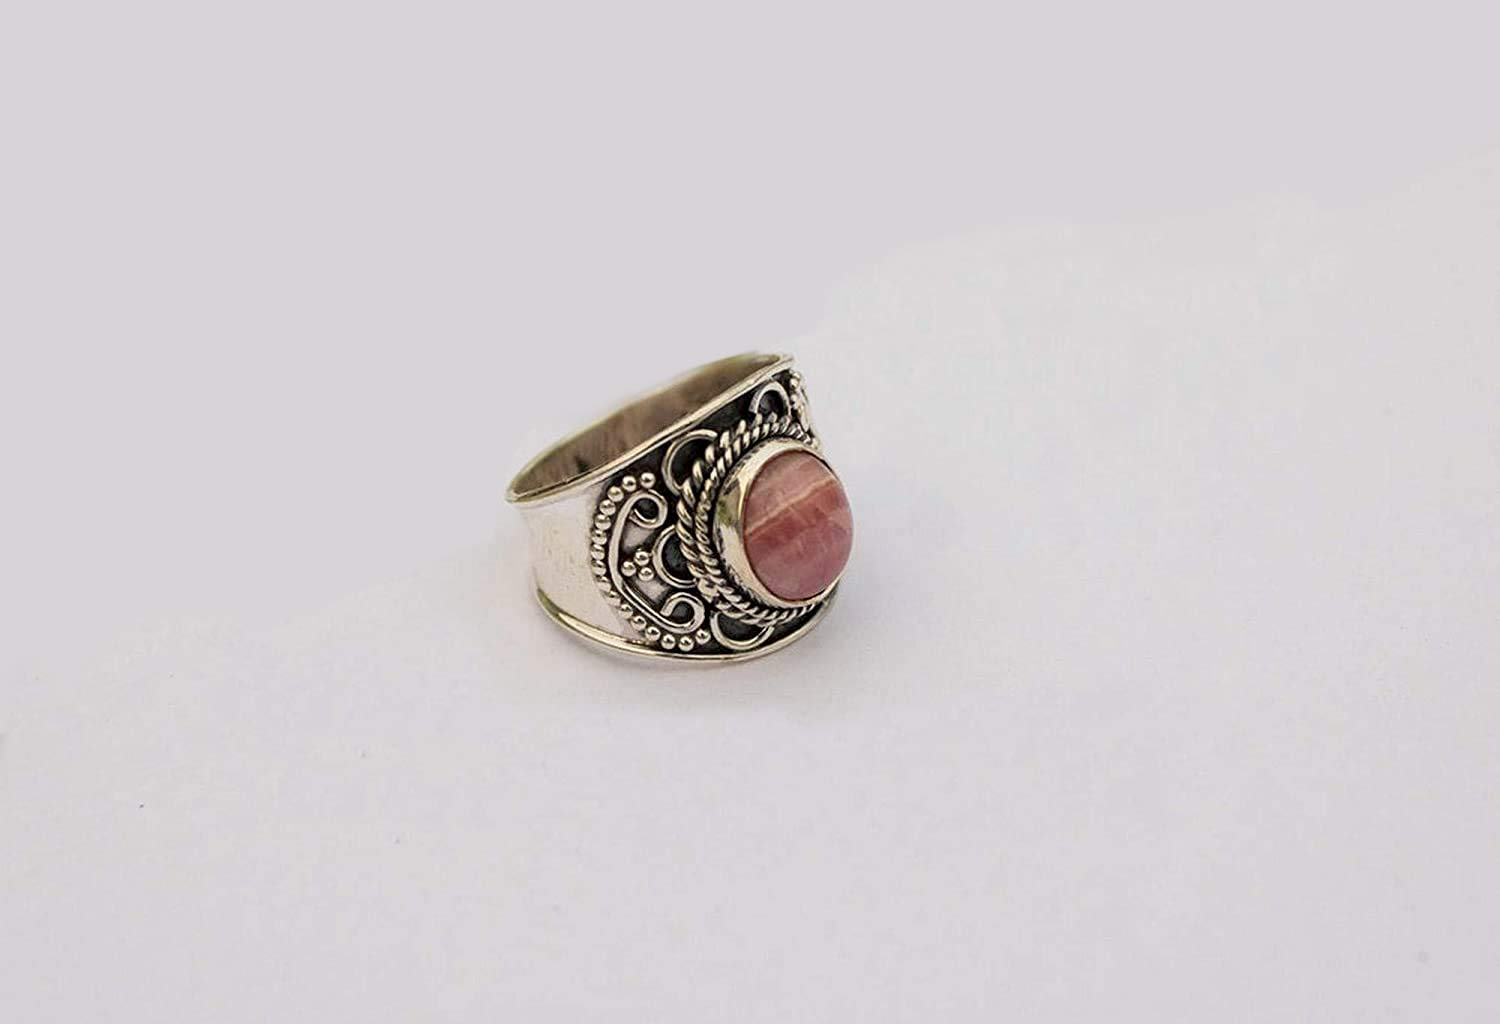 Rhodochrosite Max 52% OFF Milwaukee Mall Ring Sterling Jewelry Silver